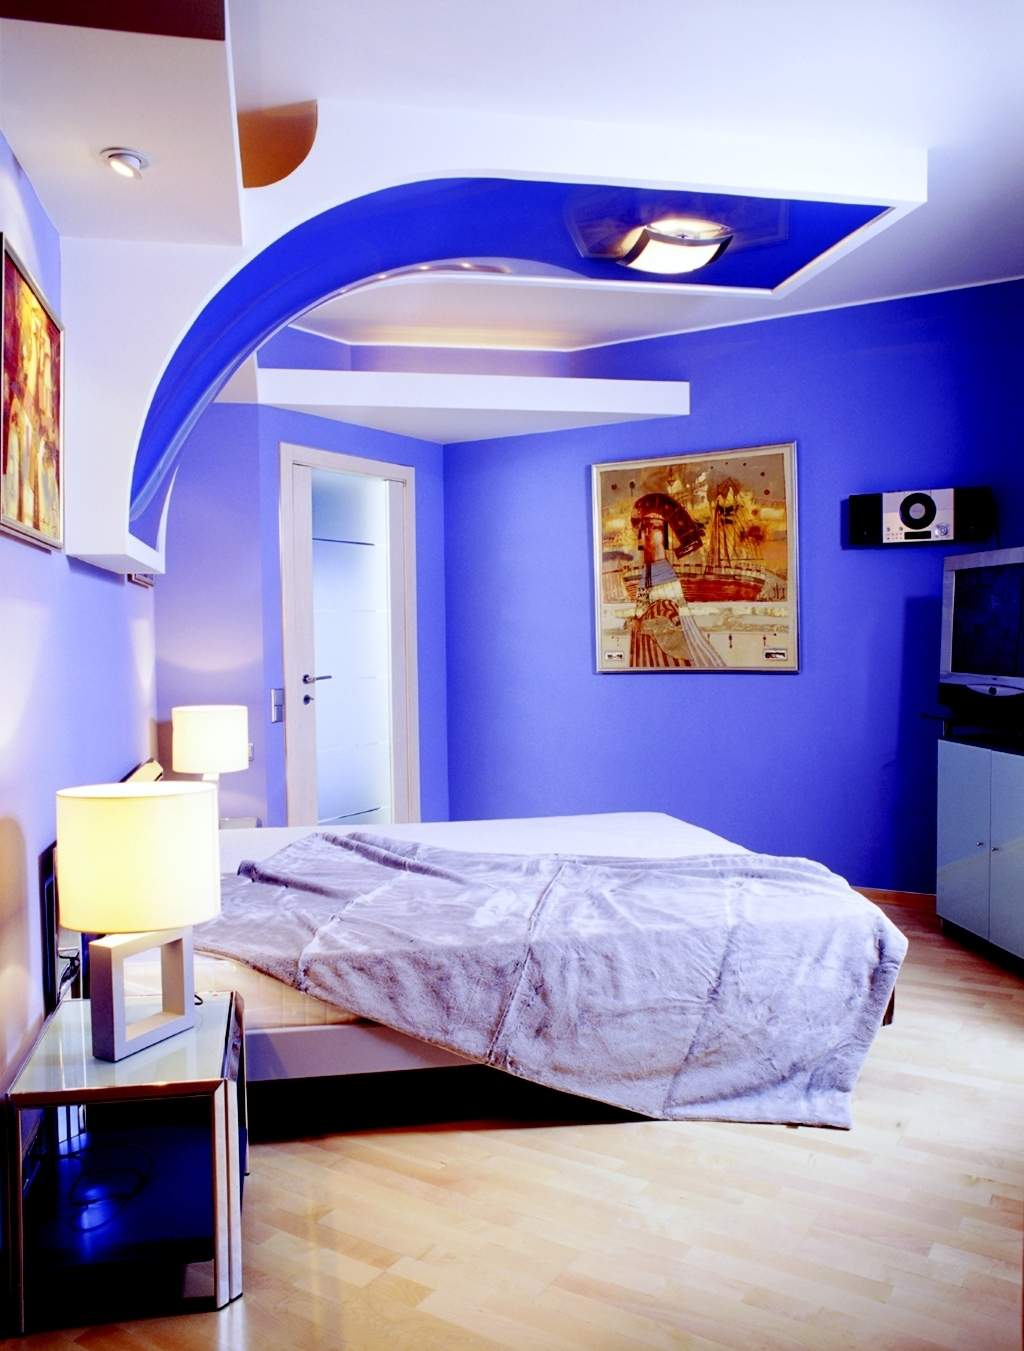 Super Bright Blue Best Paint Colors For Small Room With Canopy And White Bedding Beige